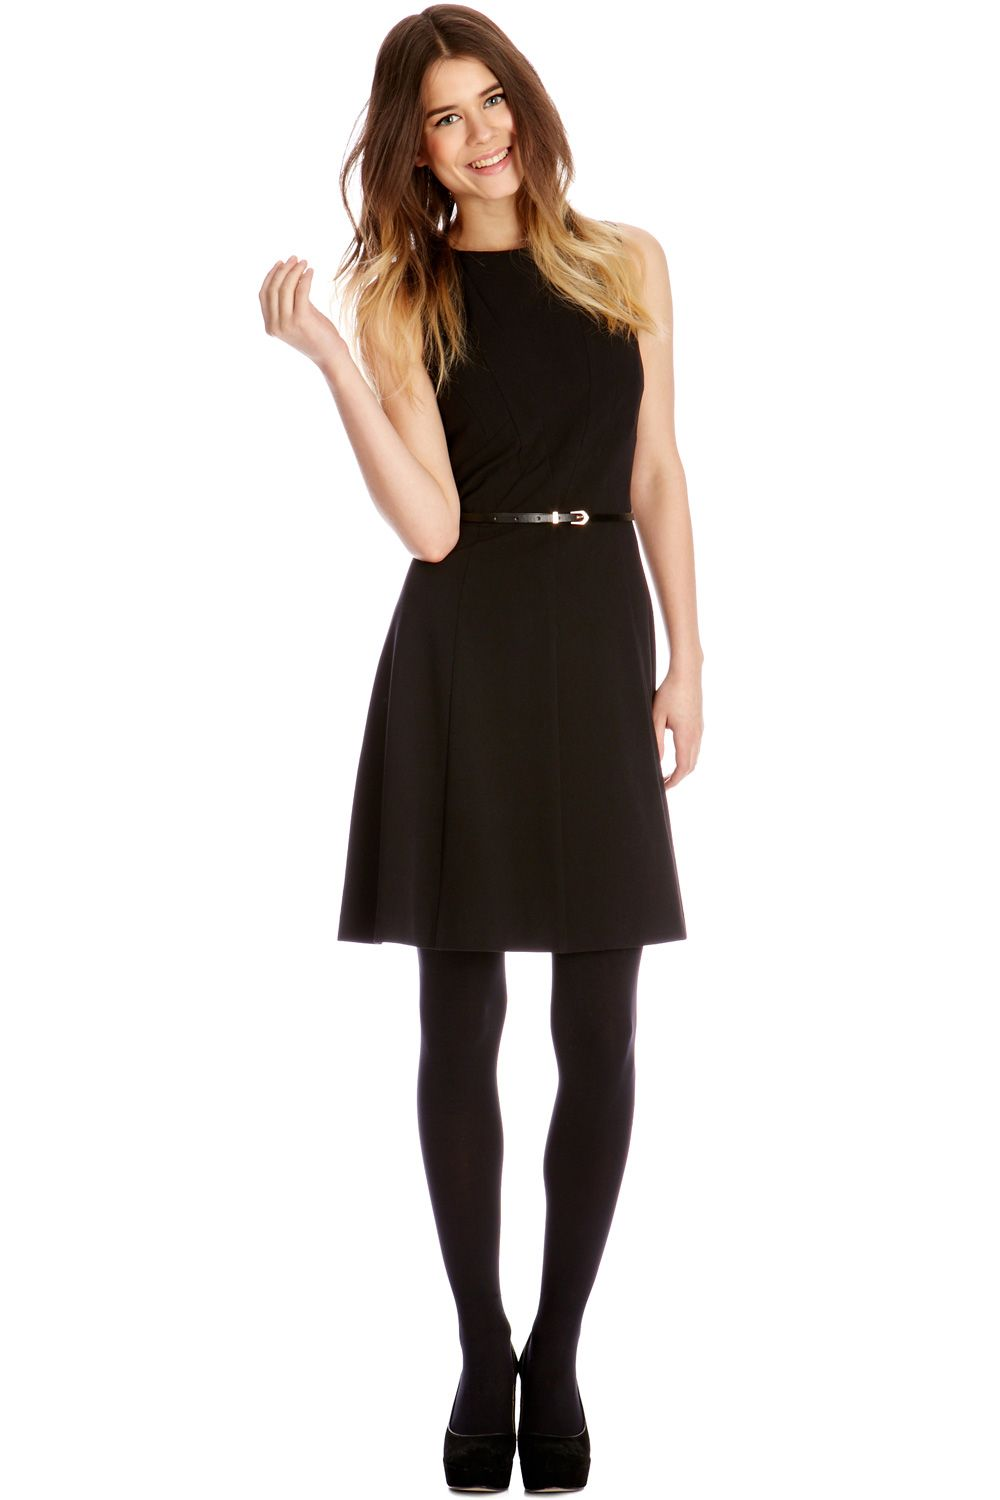 Ella seamed skater dress